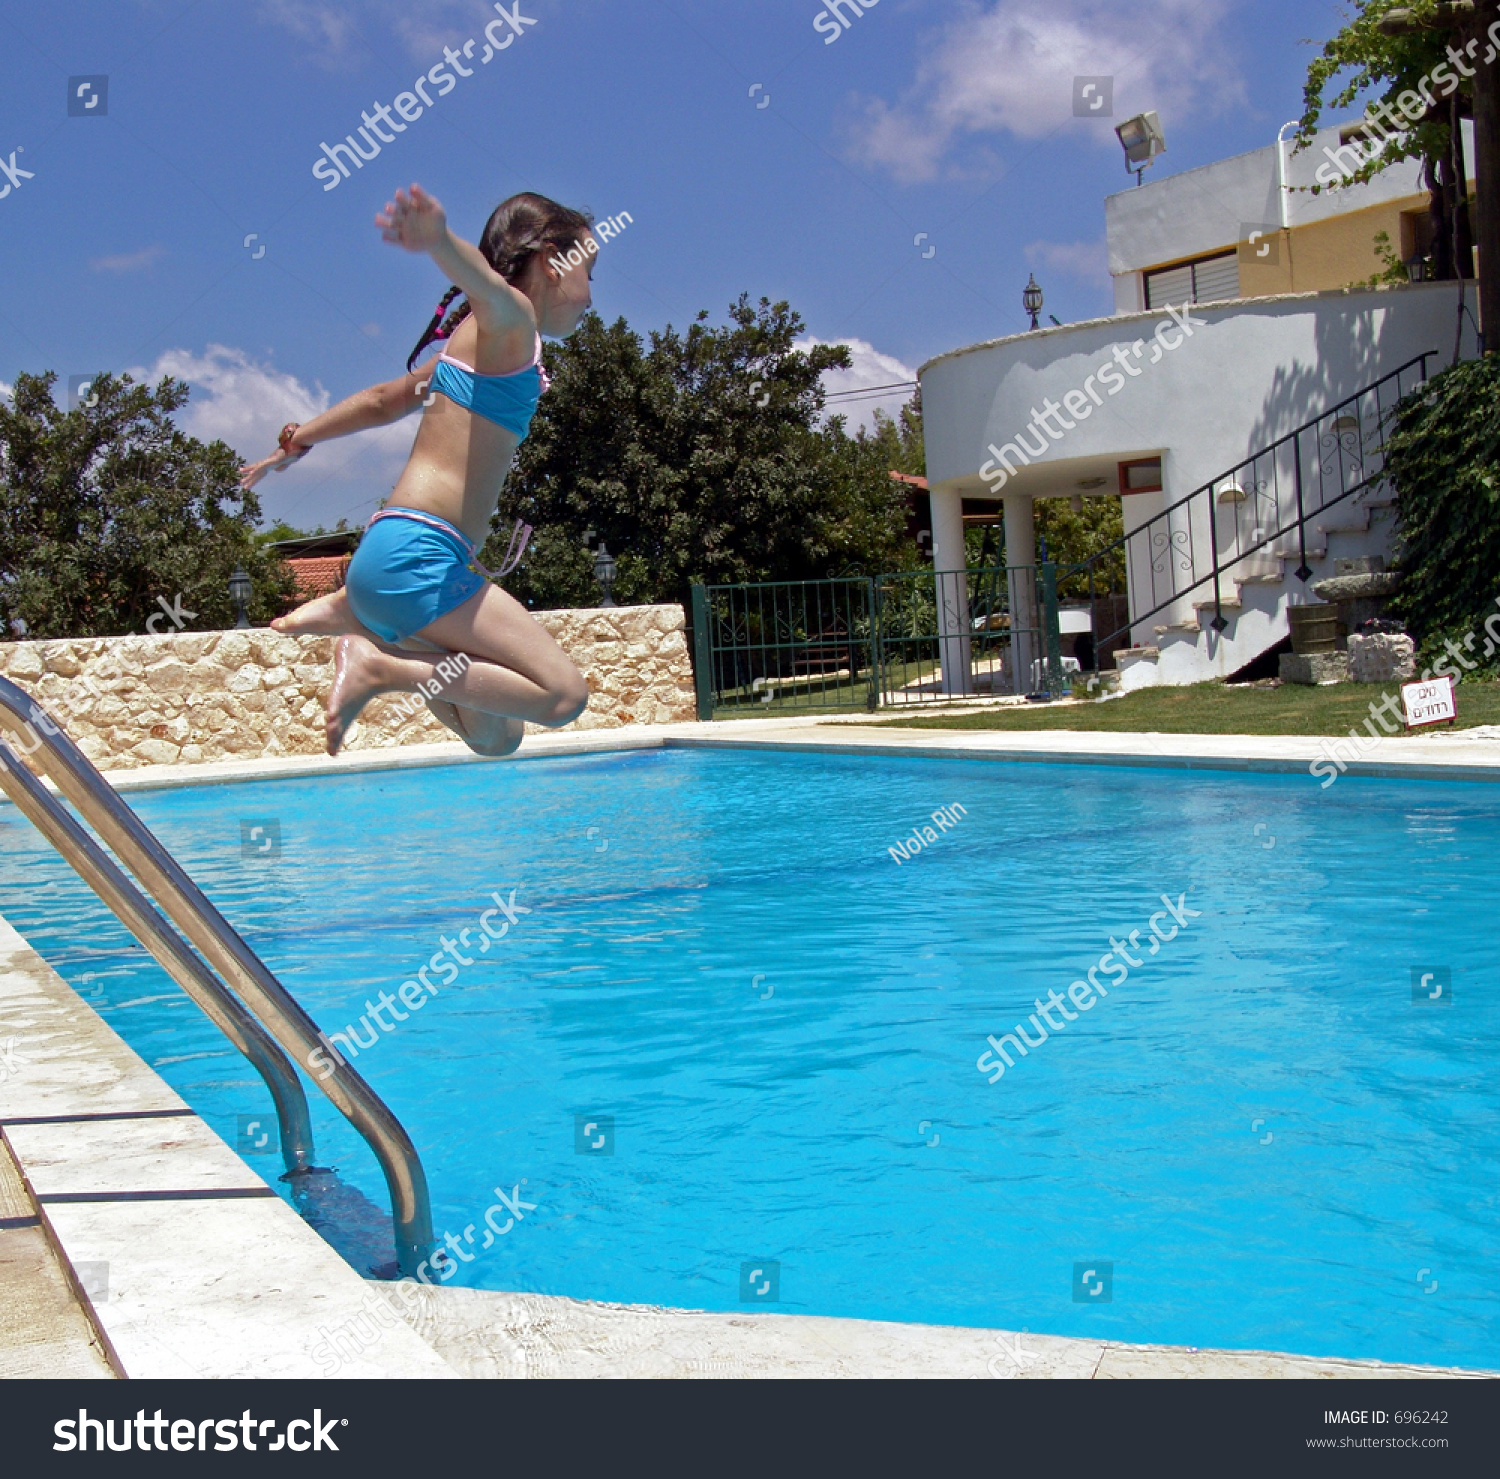 Young Girl In Blue Bathing Suit Caught Airborne While Jumping Into Swimming Pool Stock Photo